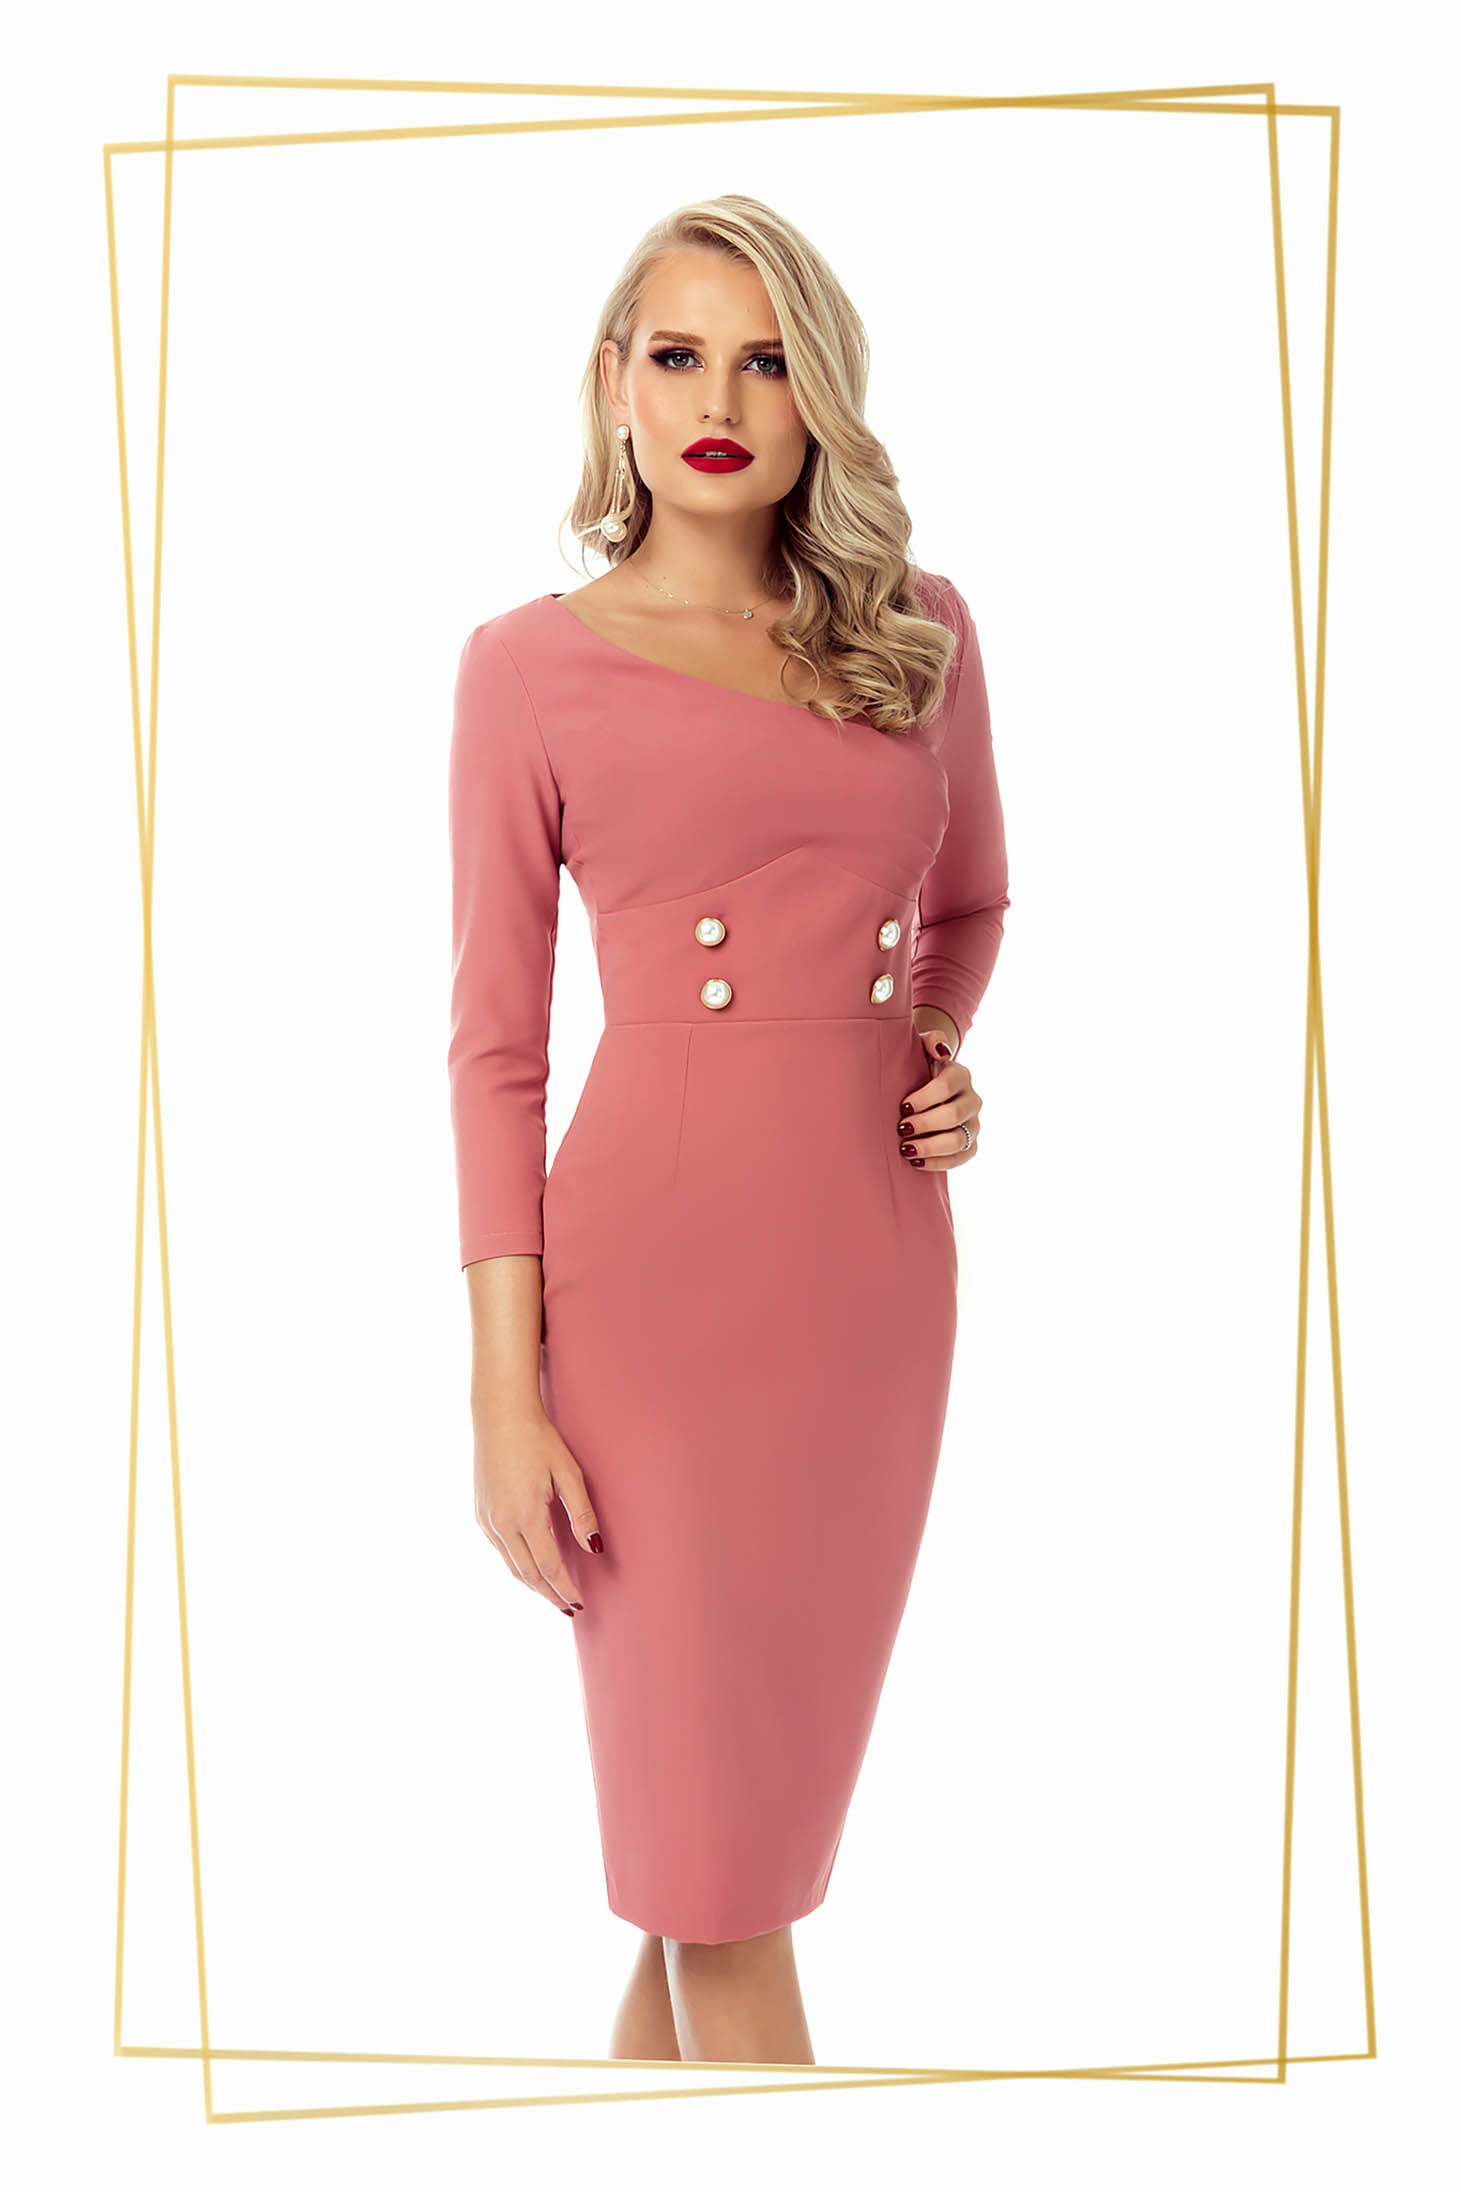 Dress lightpink office midi pencil slightly elastic fabric with button accessories